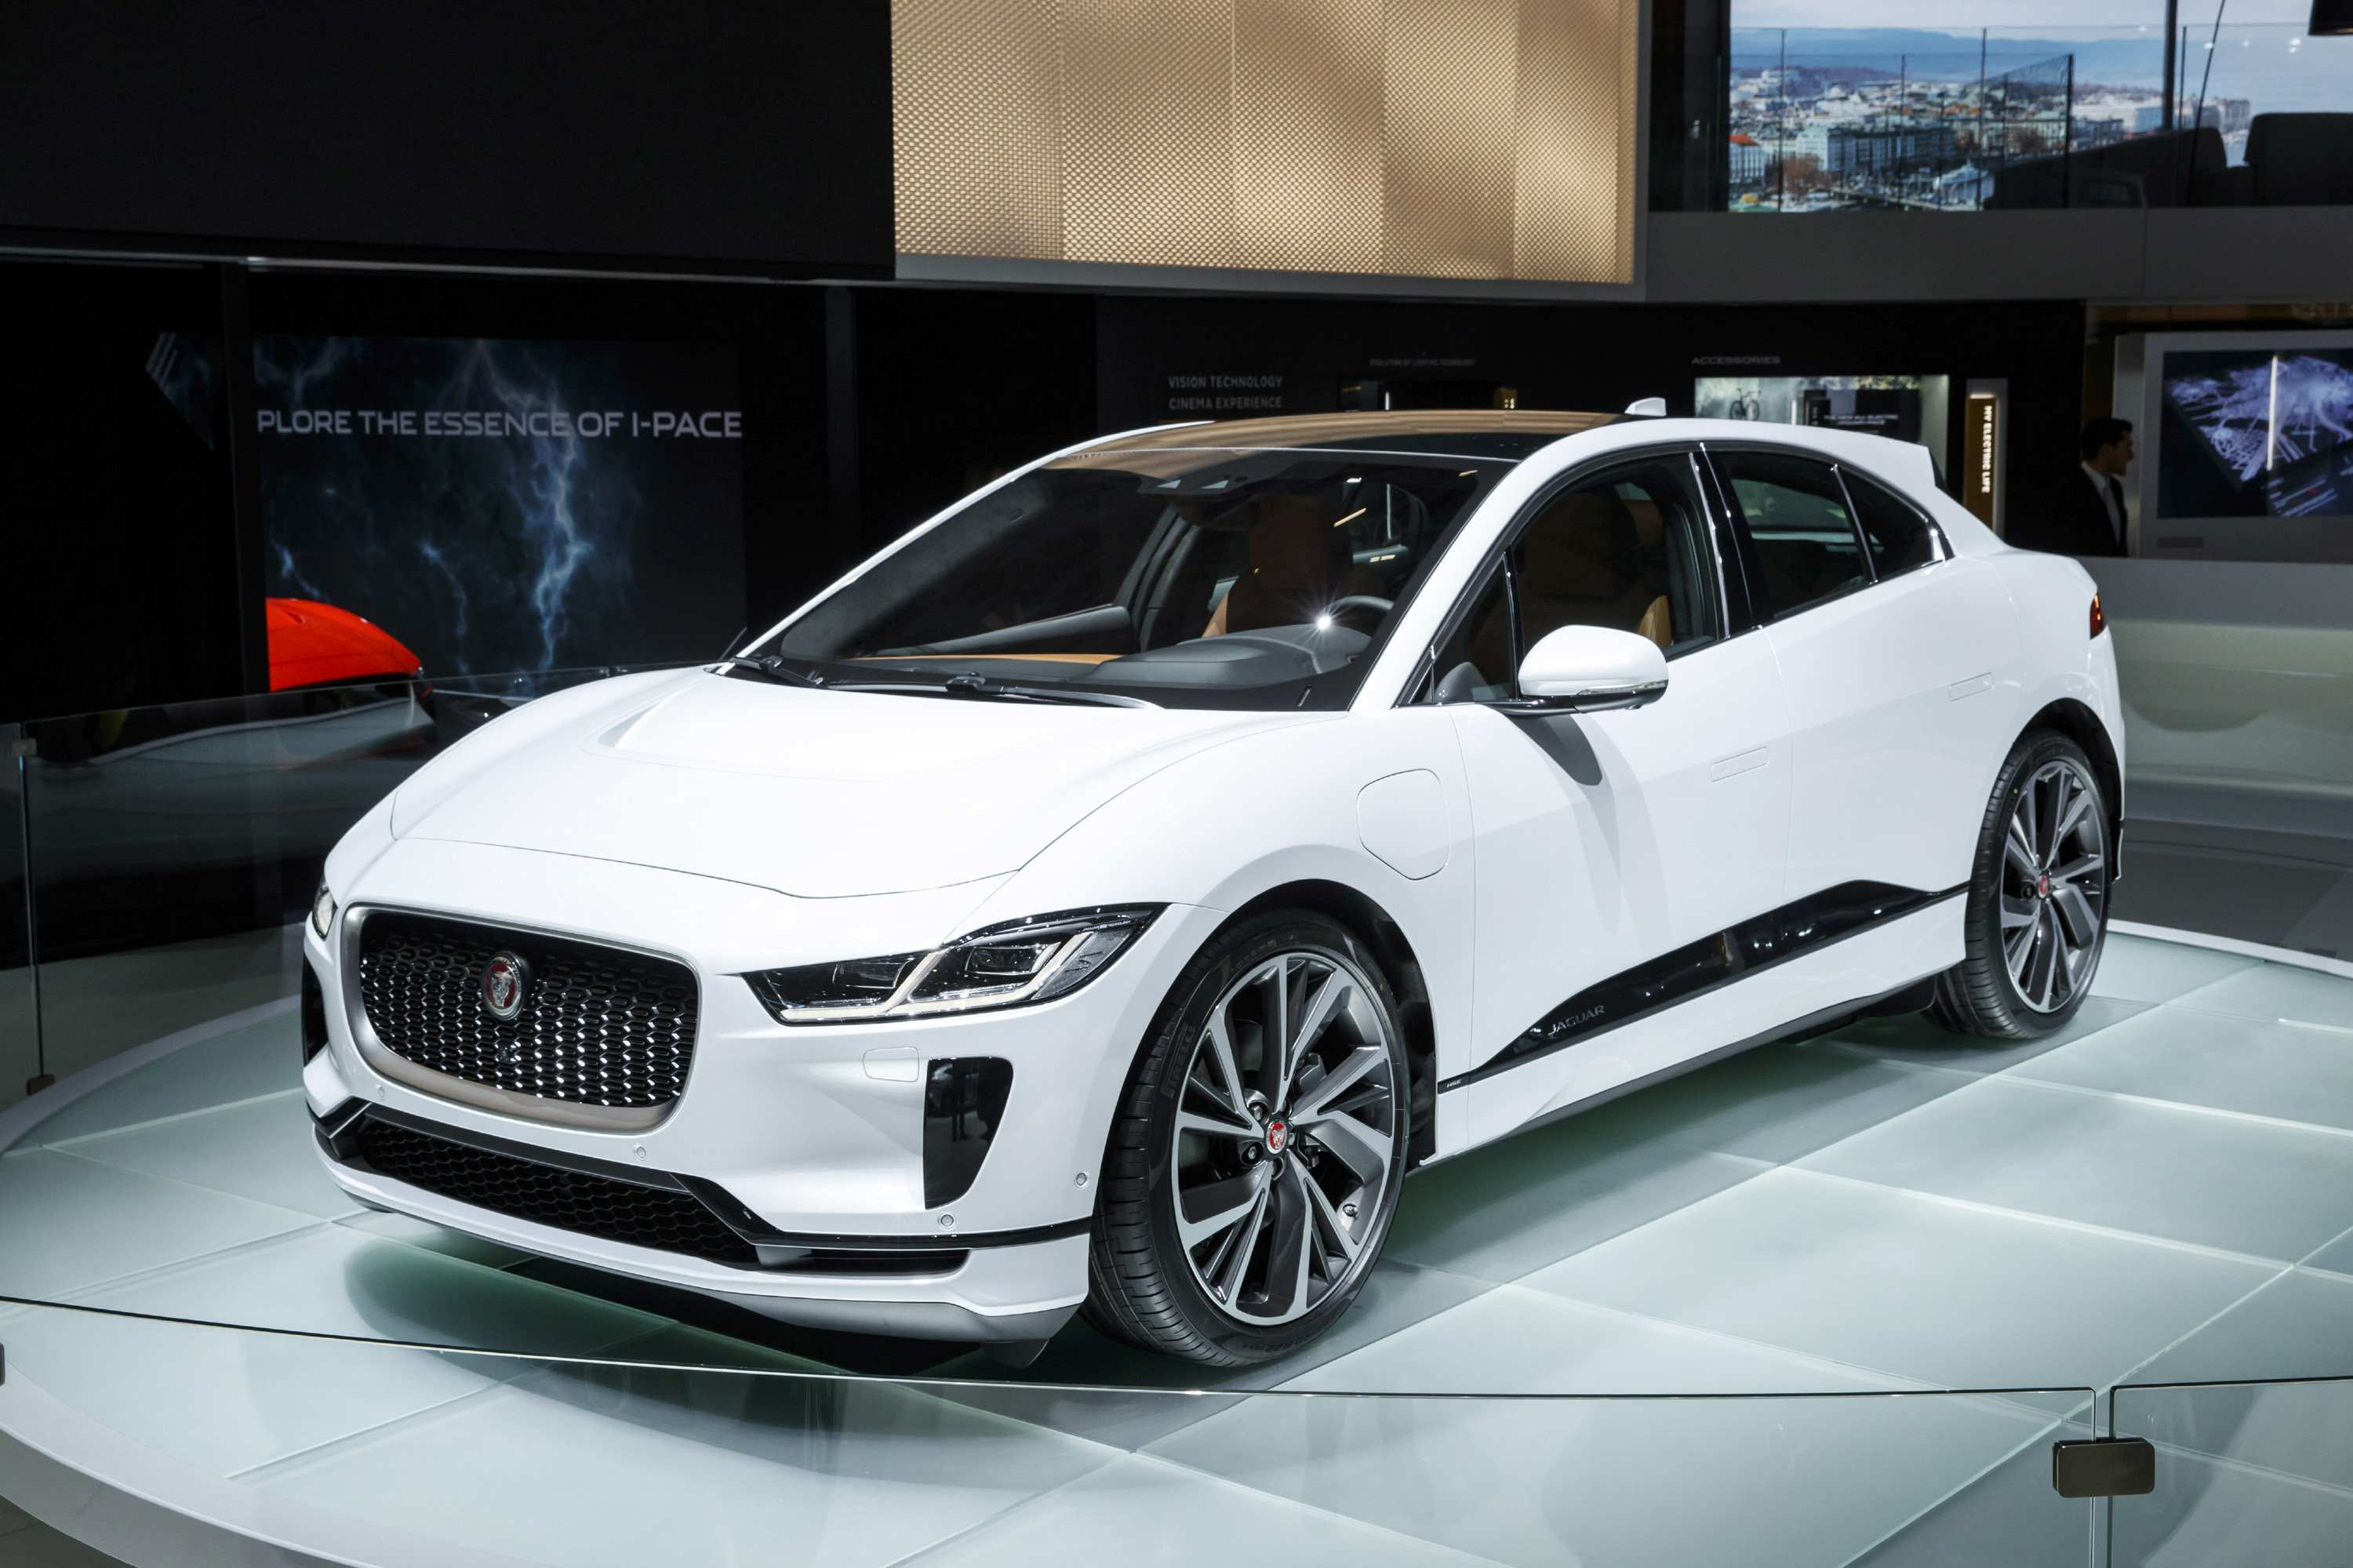 69 Gallery of 2019 Jaguar Cost Specs Images for 2019 Jaguar Cost Specs